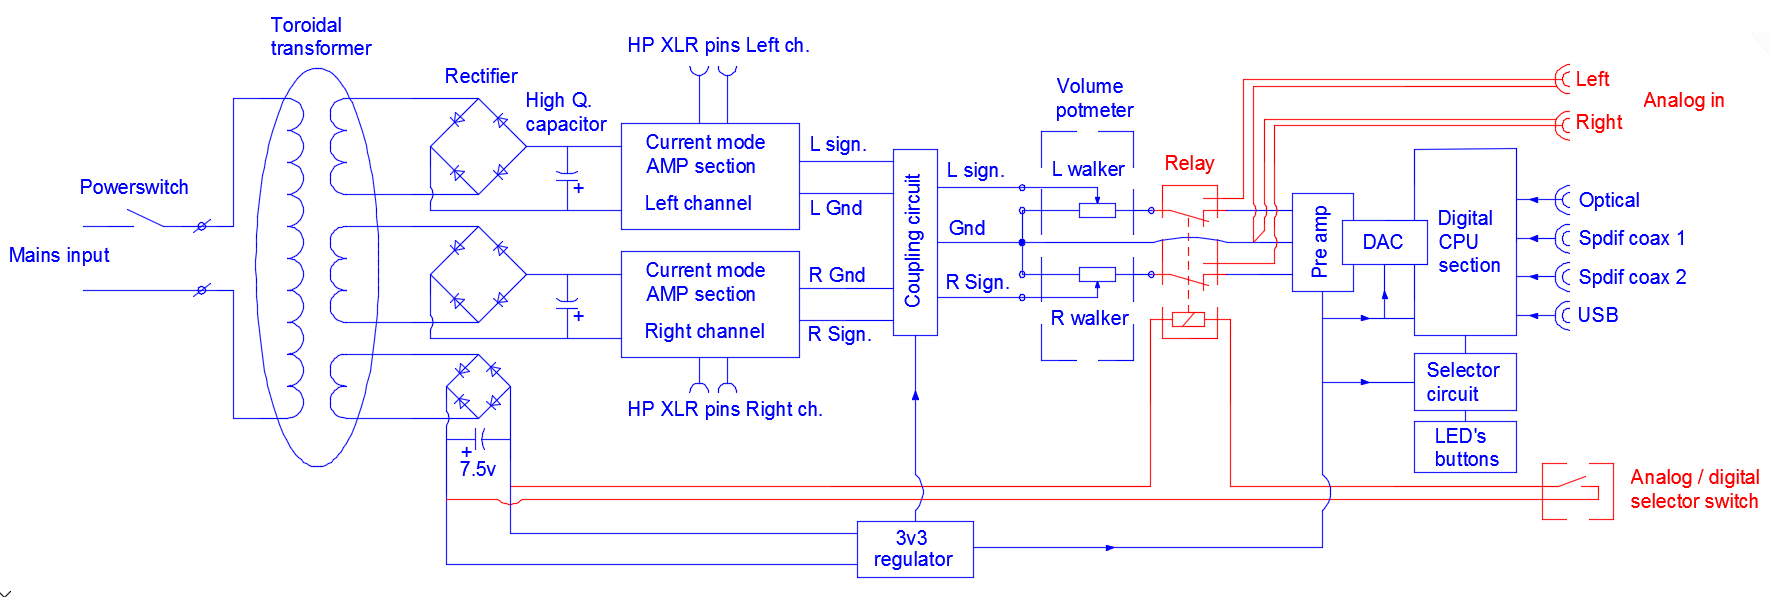 Schematic CMA400i.png